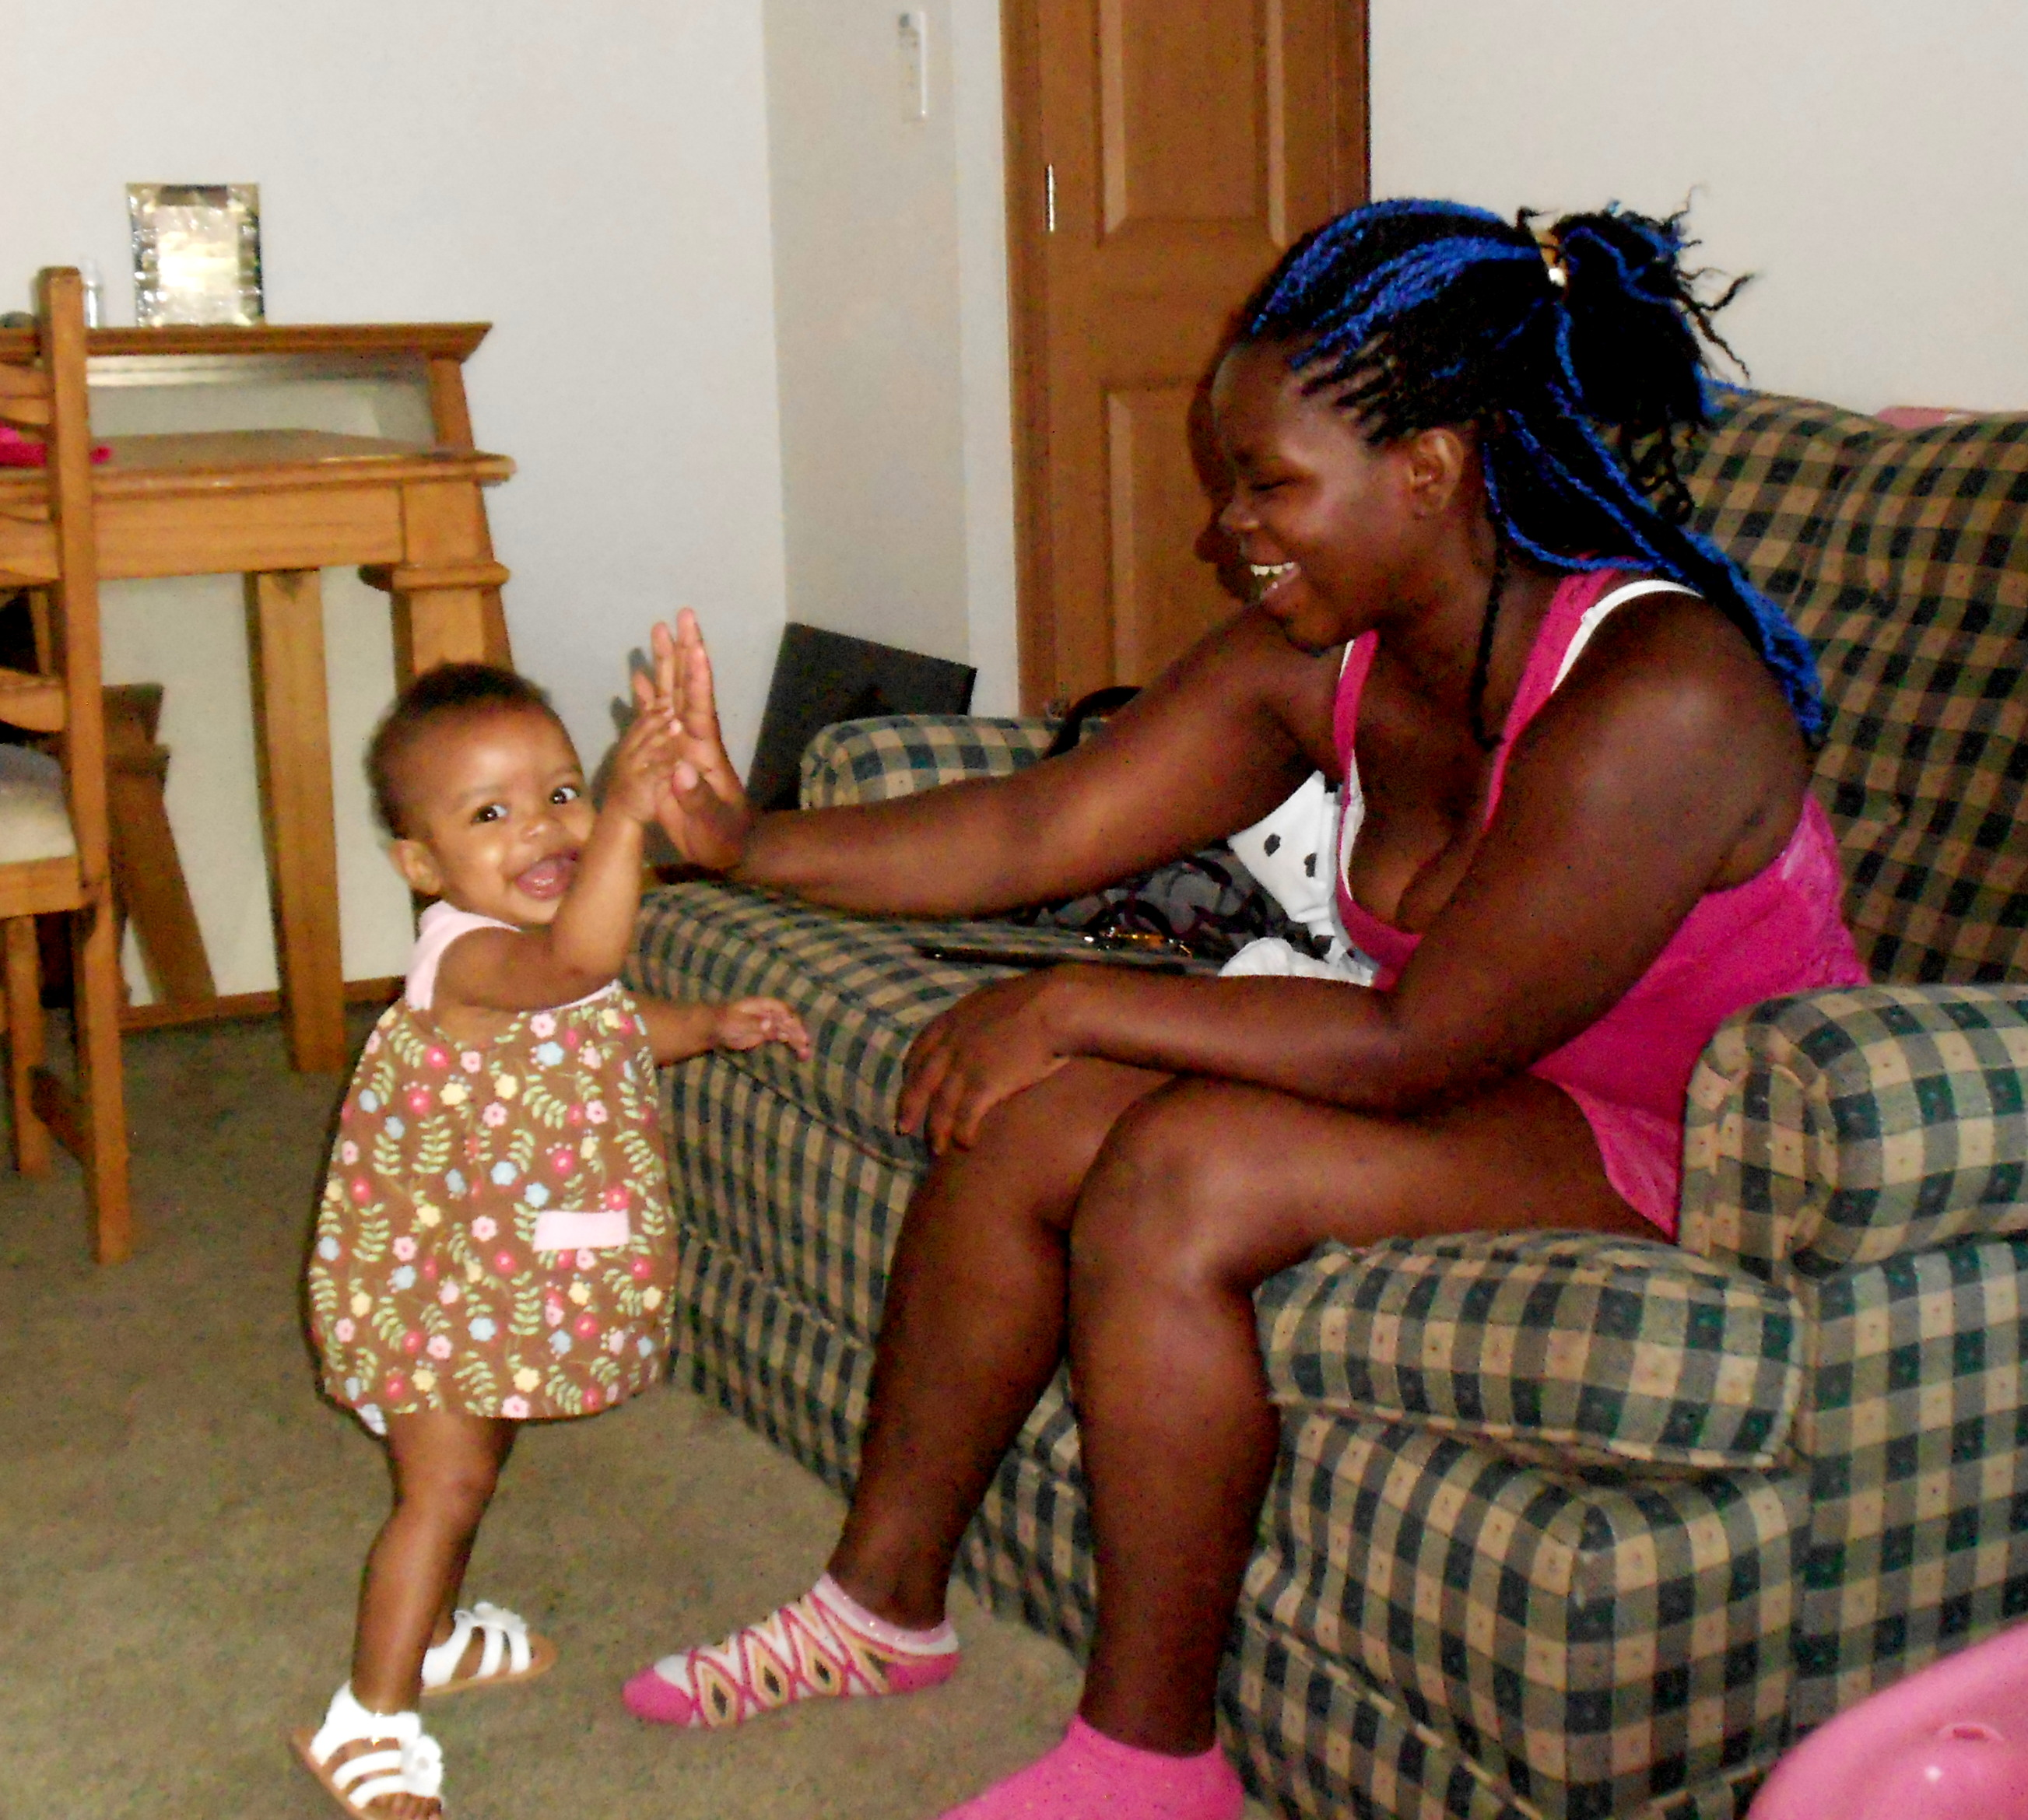 Caption: Natasha Wynn high-fives her daughter, Robin., Credit: Brian Bull, WCPN.